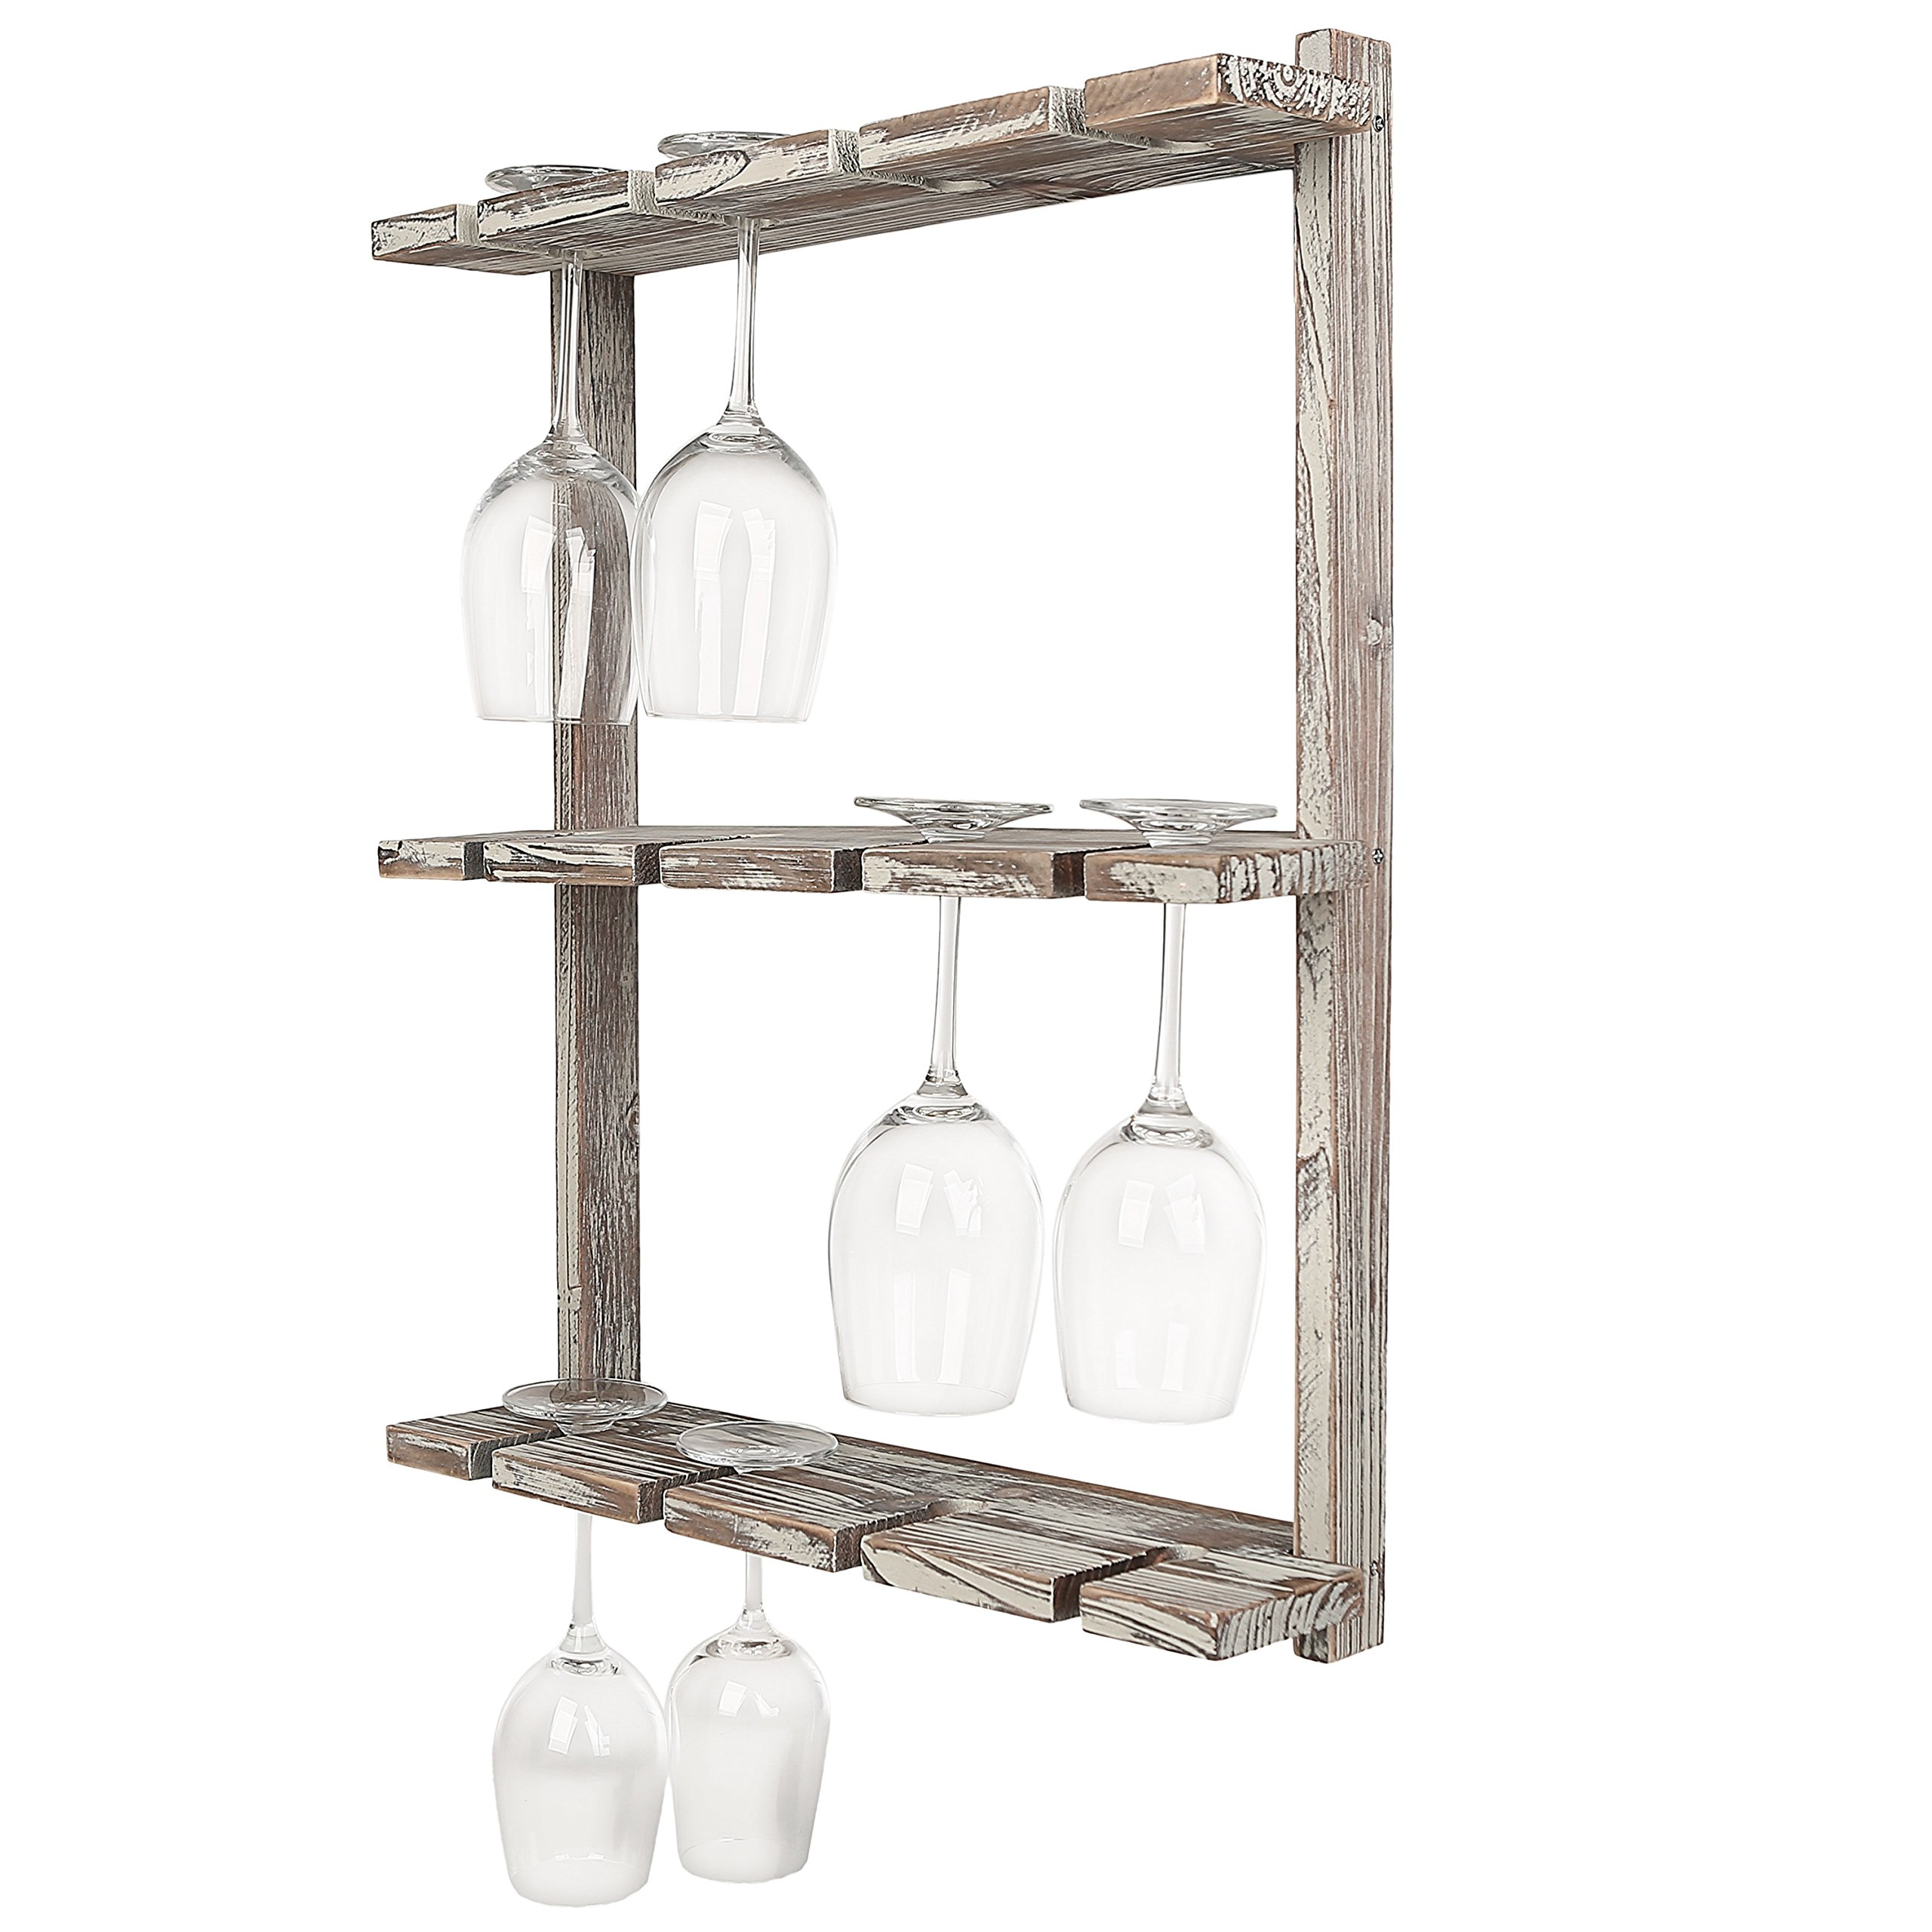 Distressed Barnwood Brown Wall Mounted 12 Wine Glass Holder Rack, Inverted Stemware Display by MyGift